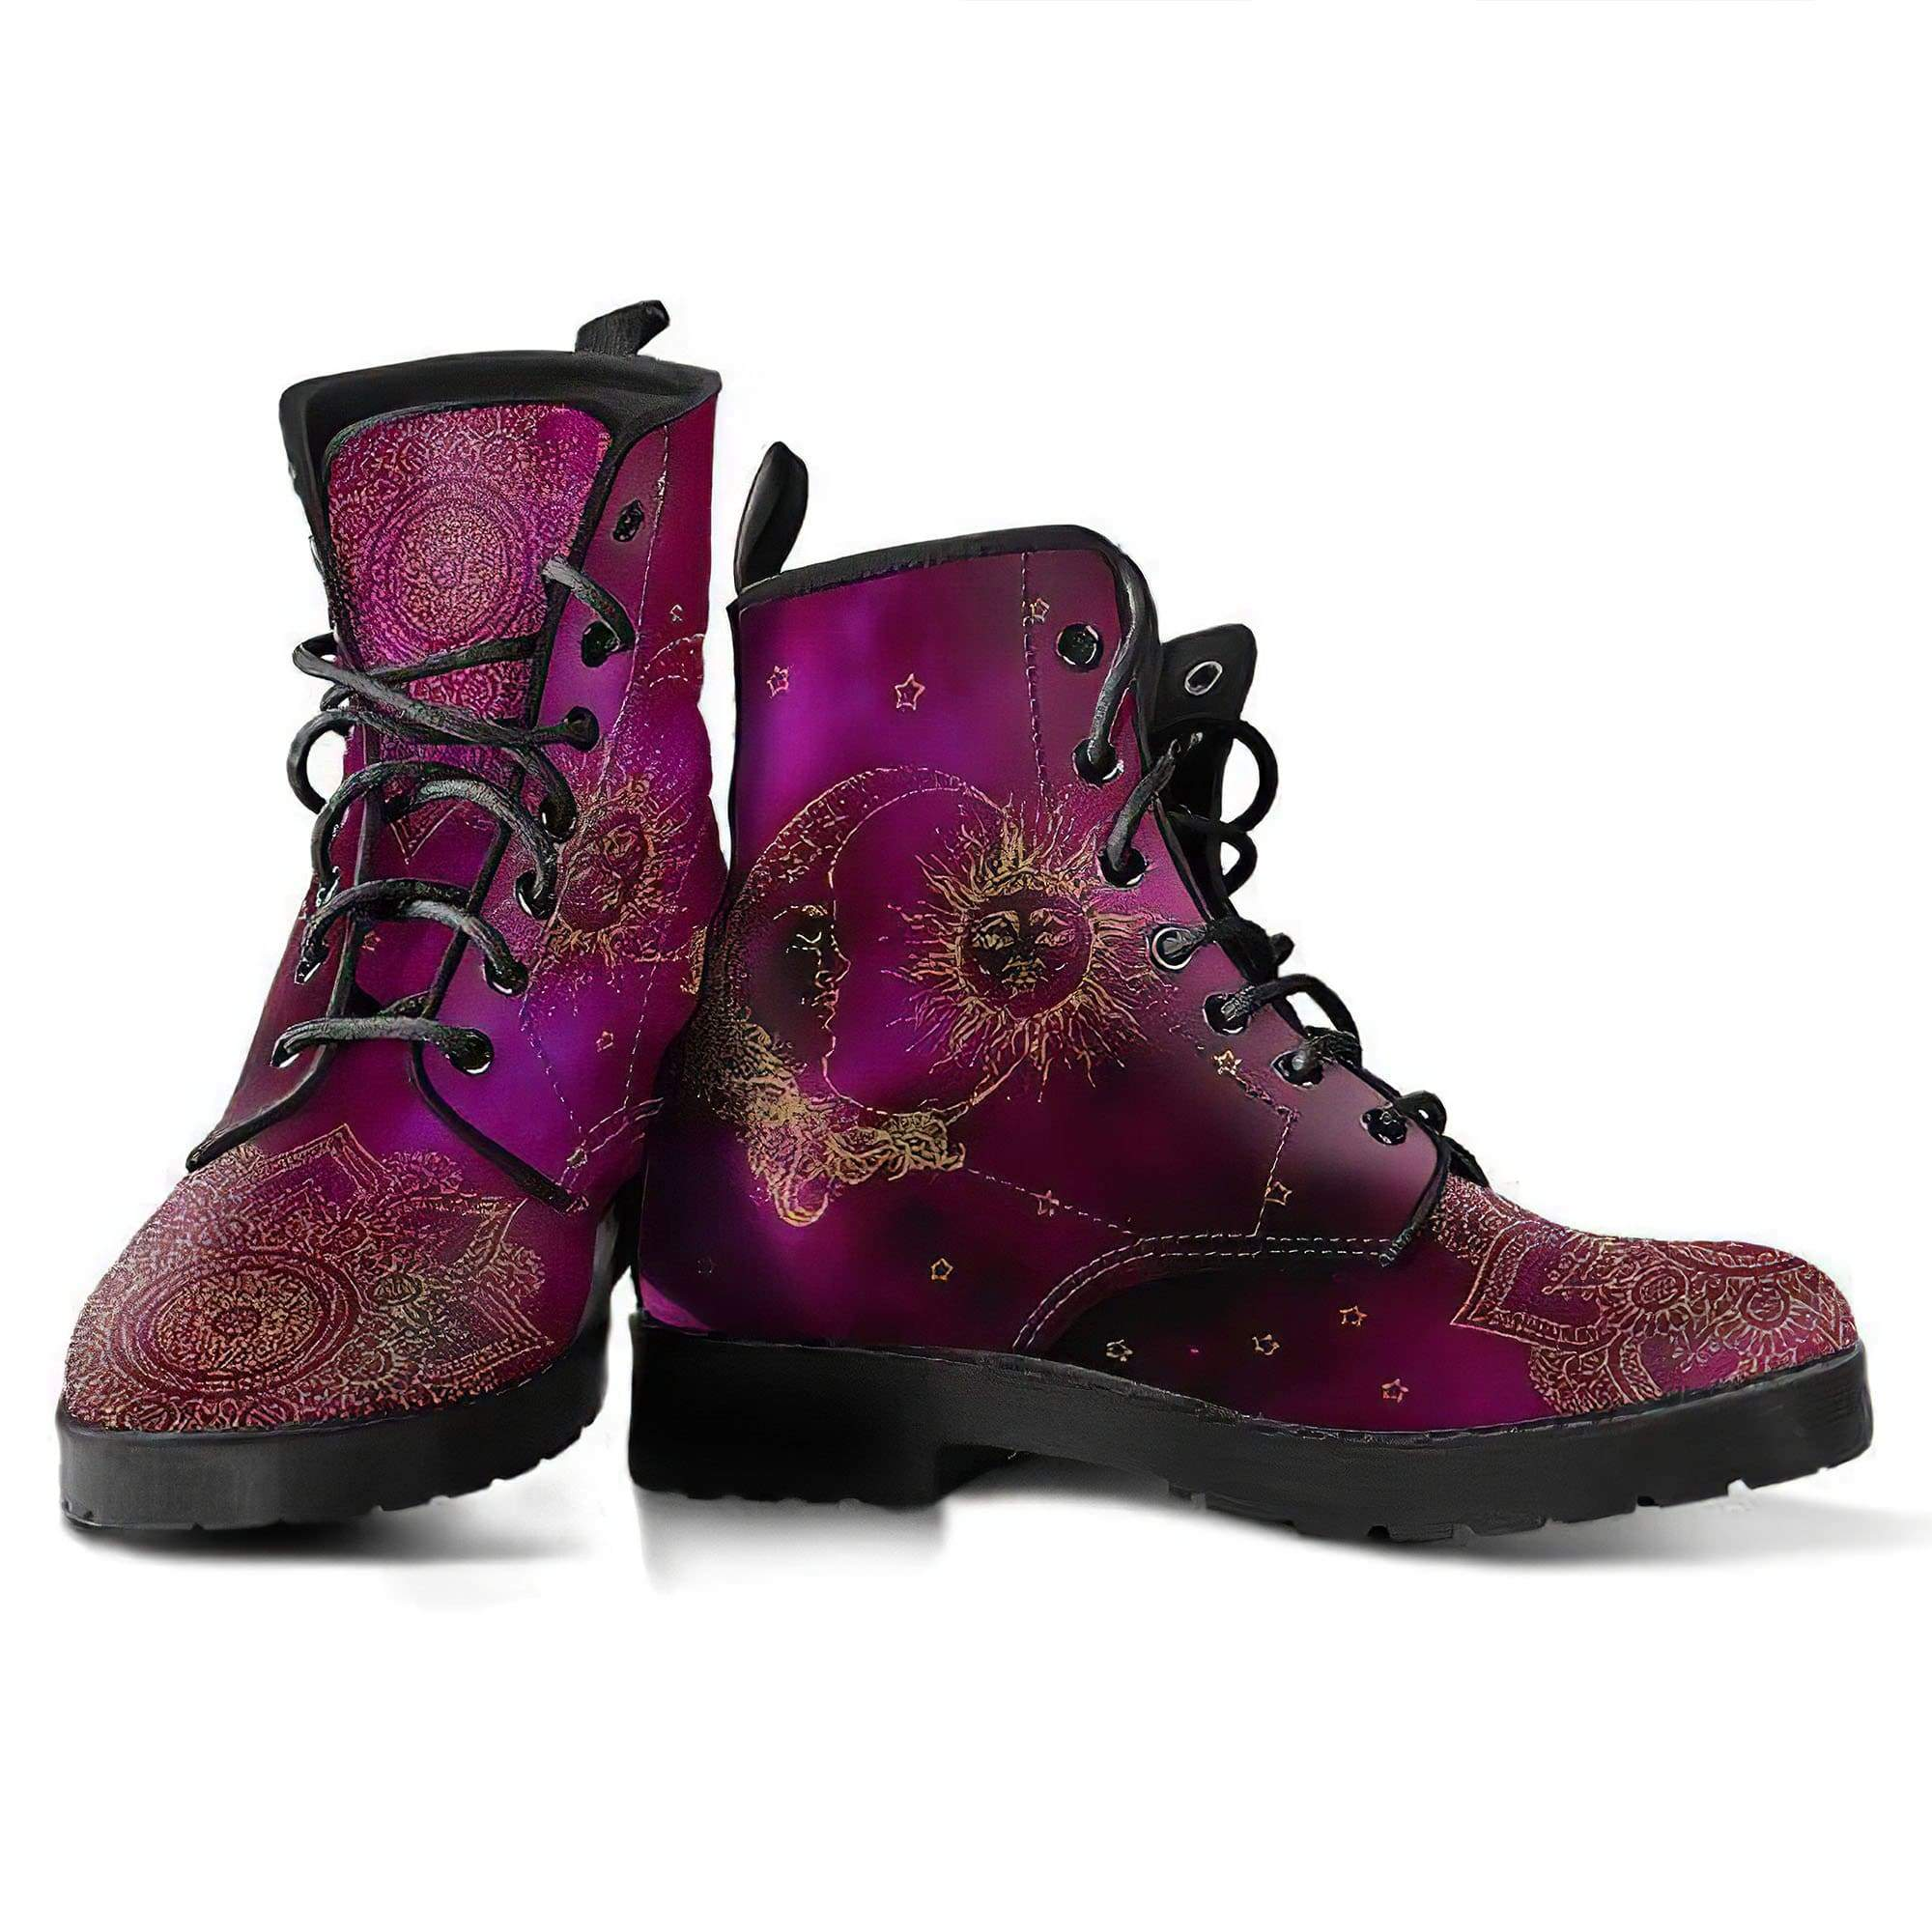 Sun and Moon 2.0 Handcrafted Boots Women's Leather Boots